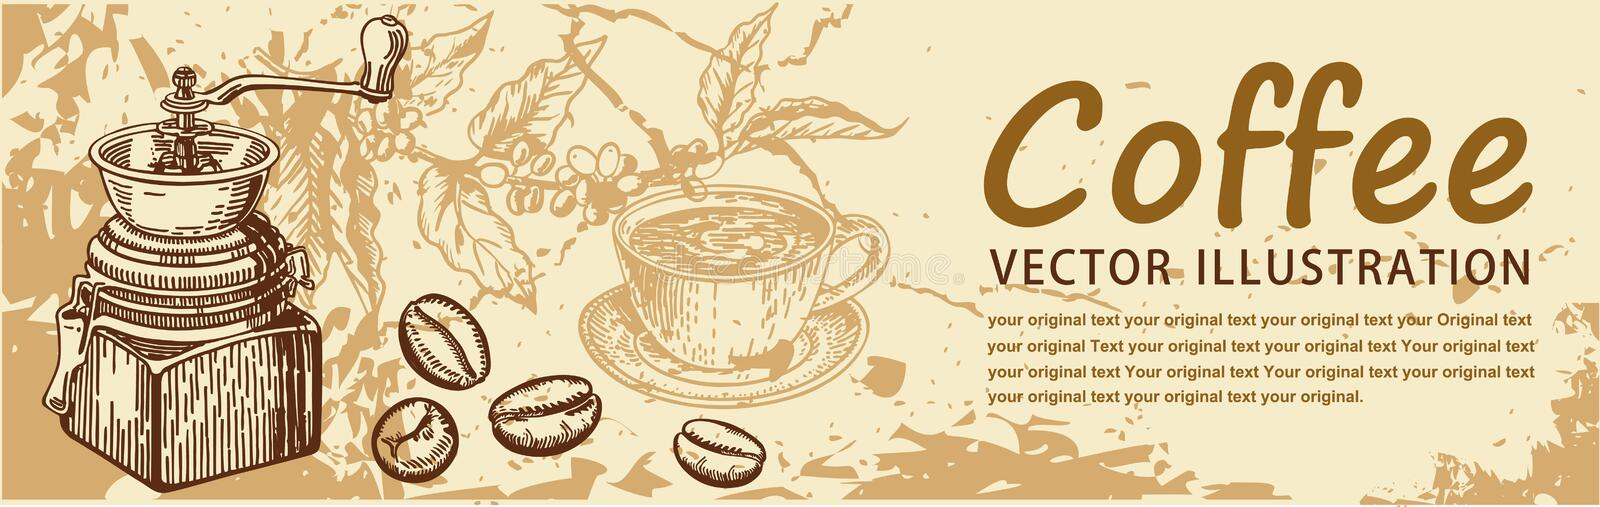 Vintage coffee backgrounds. Menu for restaurant, cafe, bar, coffeehouse stock illustration